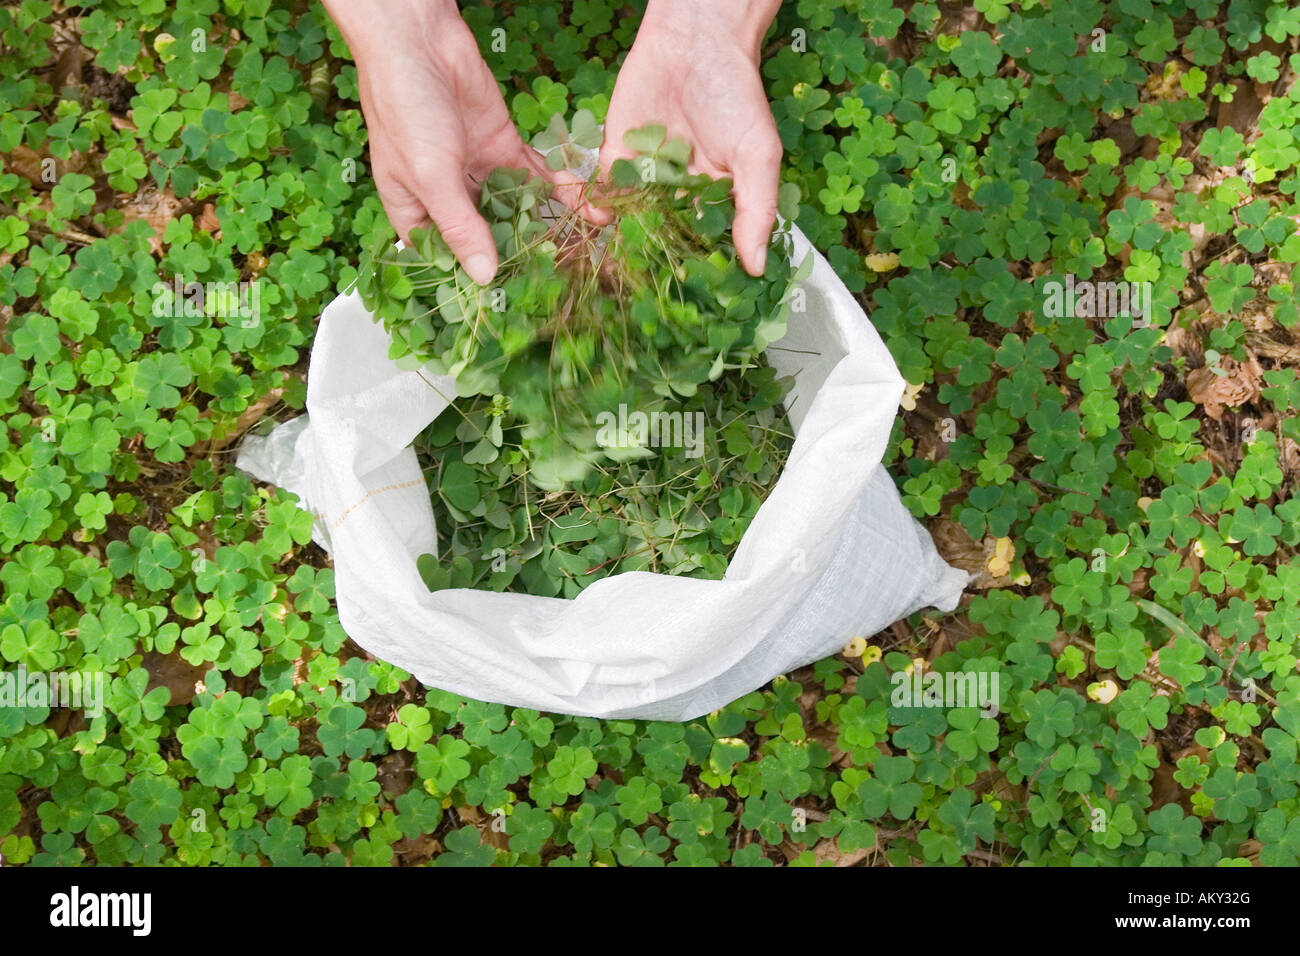 Collecting Wood Sorrell (Oxalis) for the production of remedies, Alsace, France Stock Photo